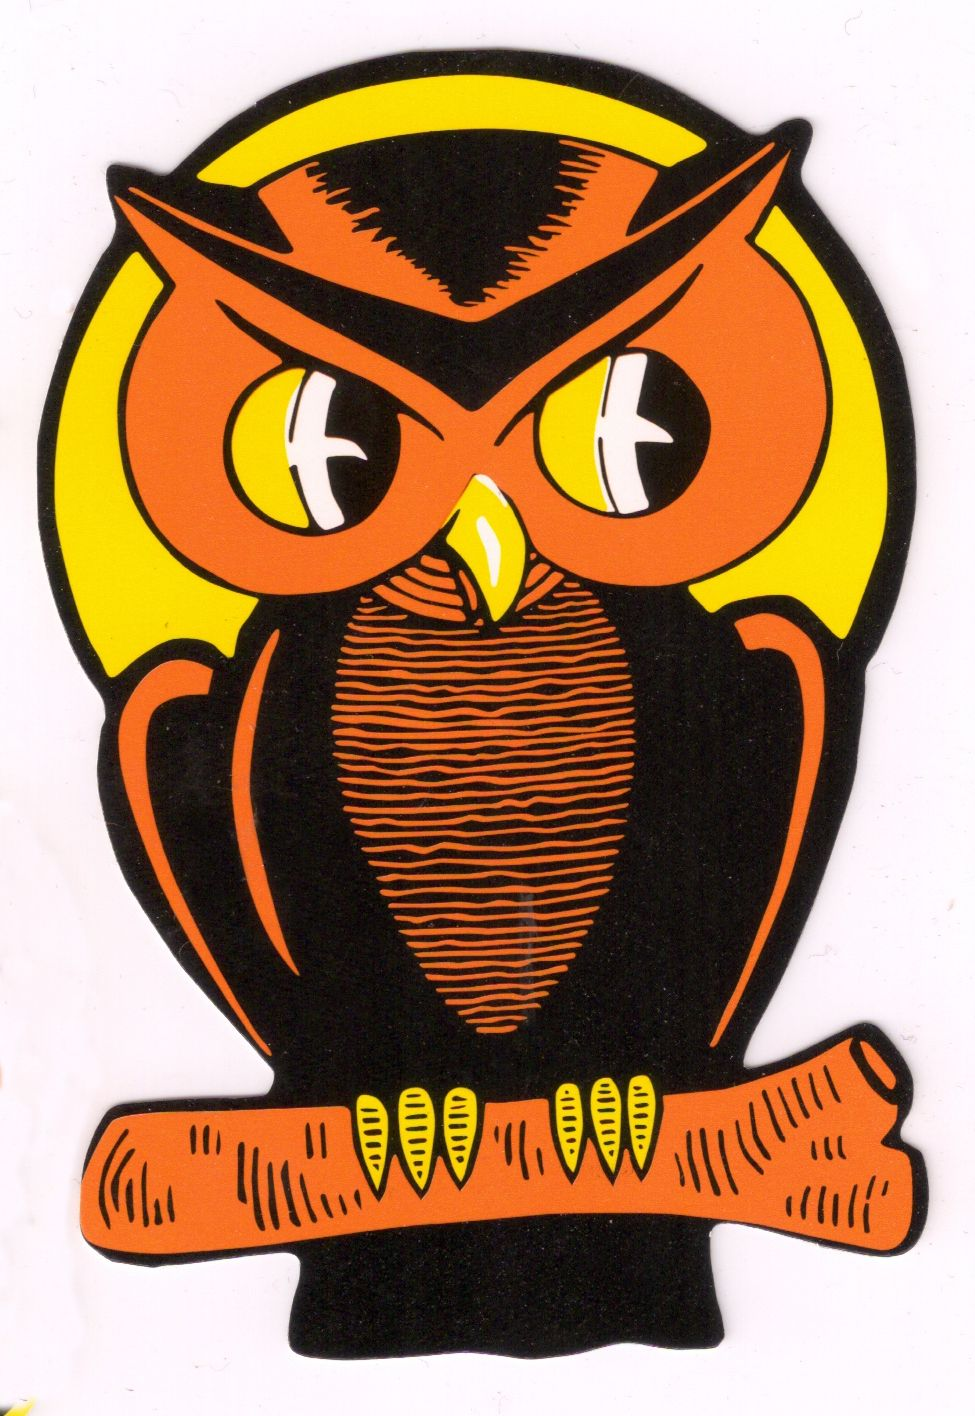 Retro Owl Decoration Reminds Me Of My Childhood Vintage Halloween Decorations Vintage Halloween Images Retro Halloween